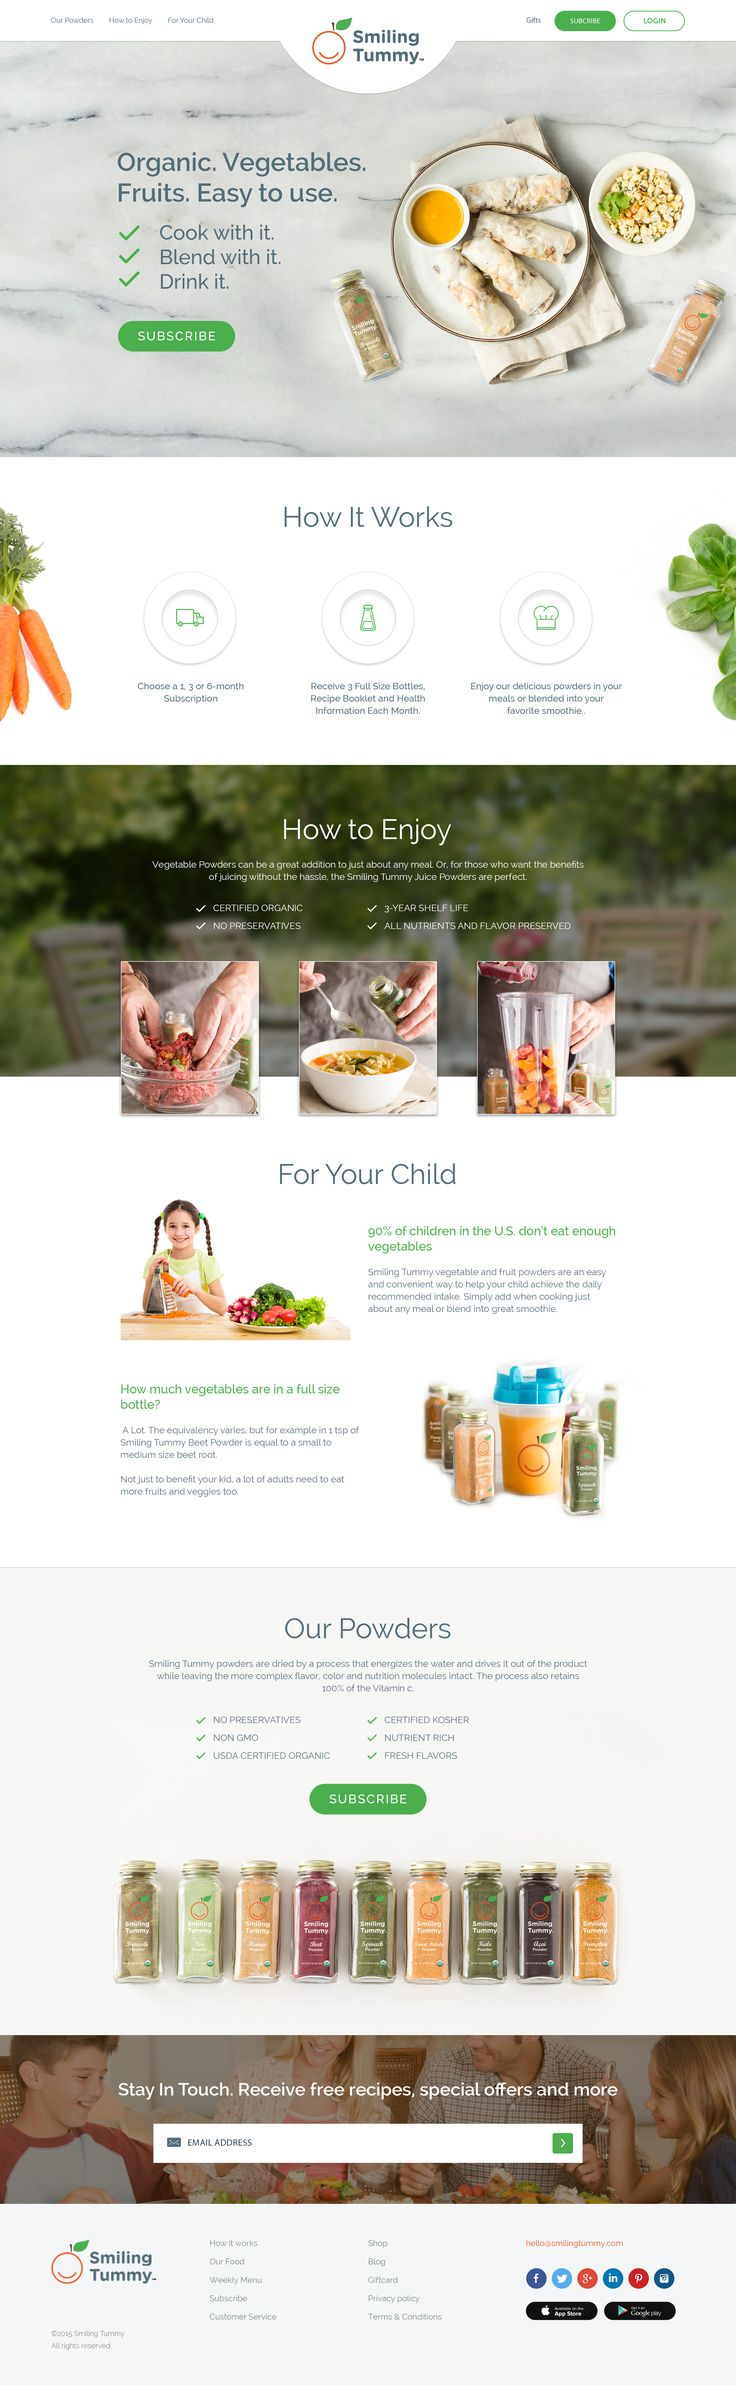 Smiling tummy web design